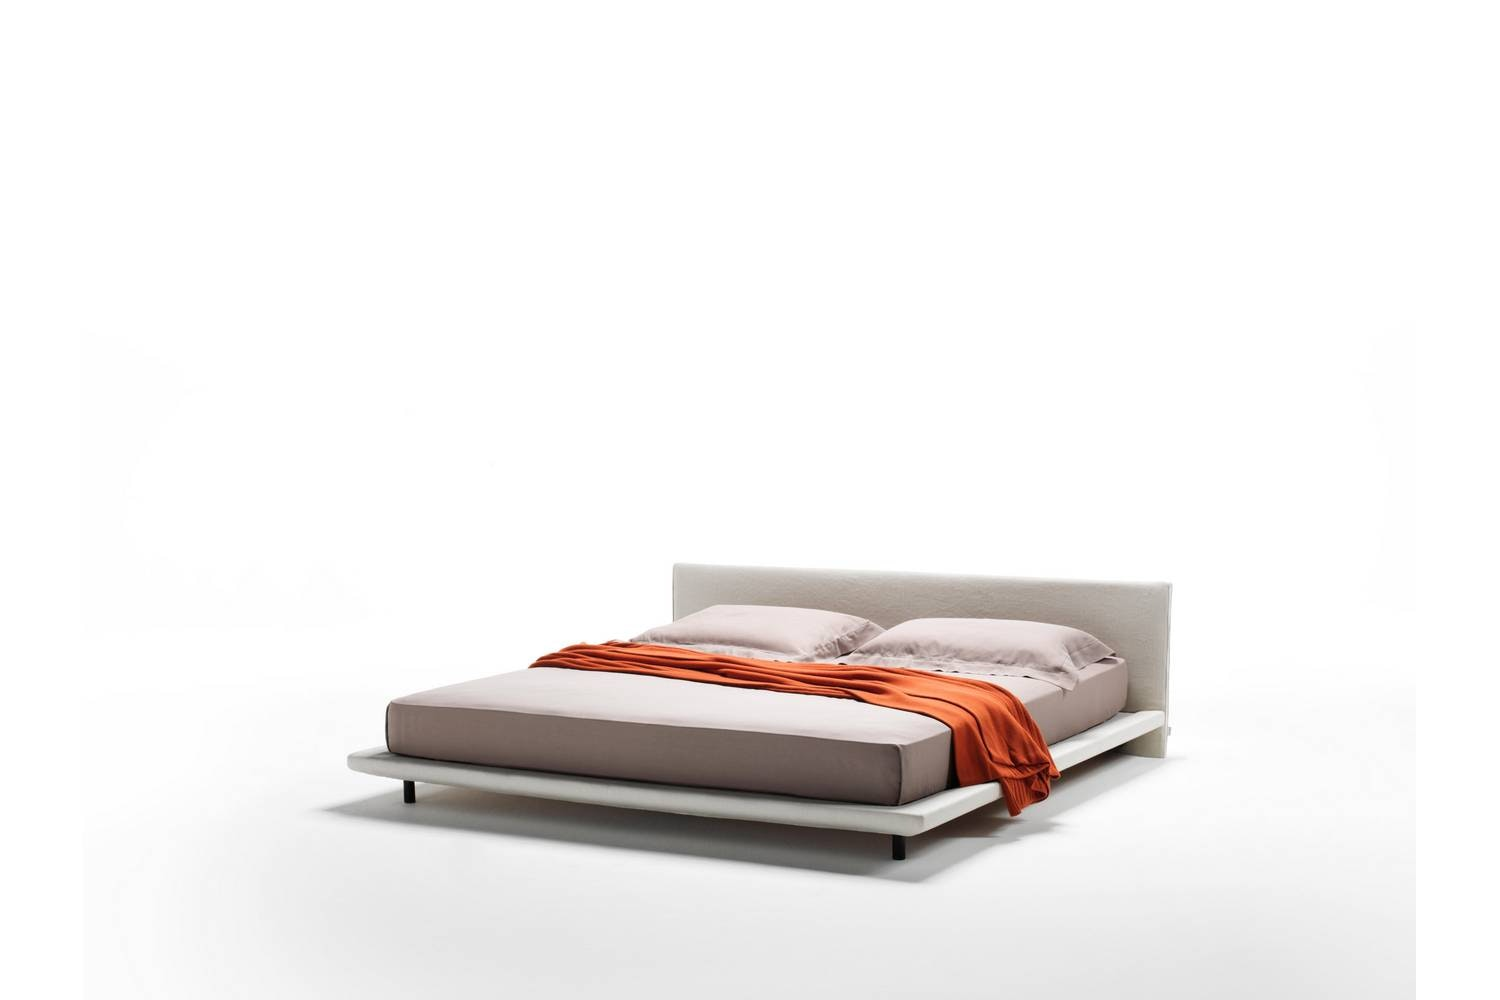 Chemise Bed by Piero Lissoni for Living Divani